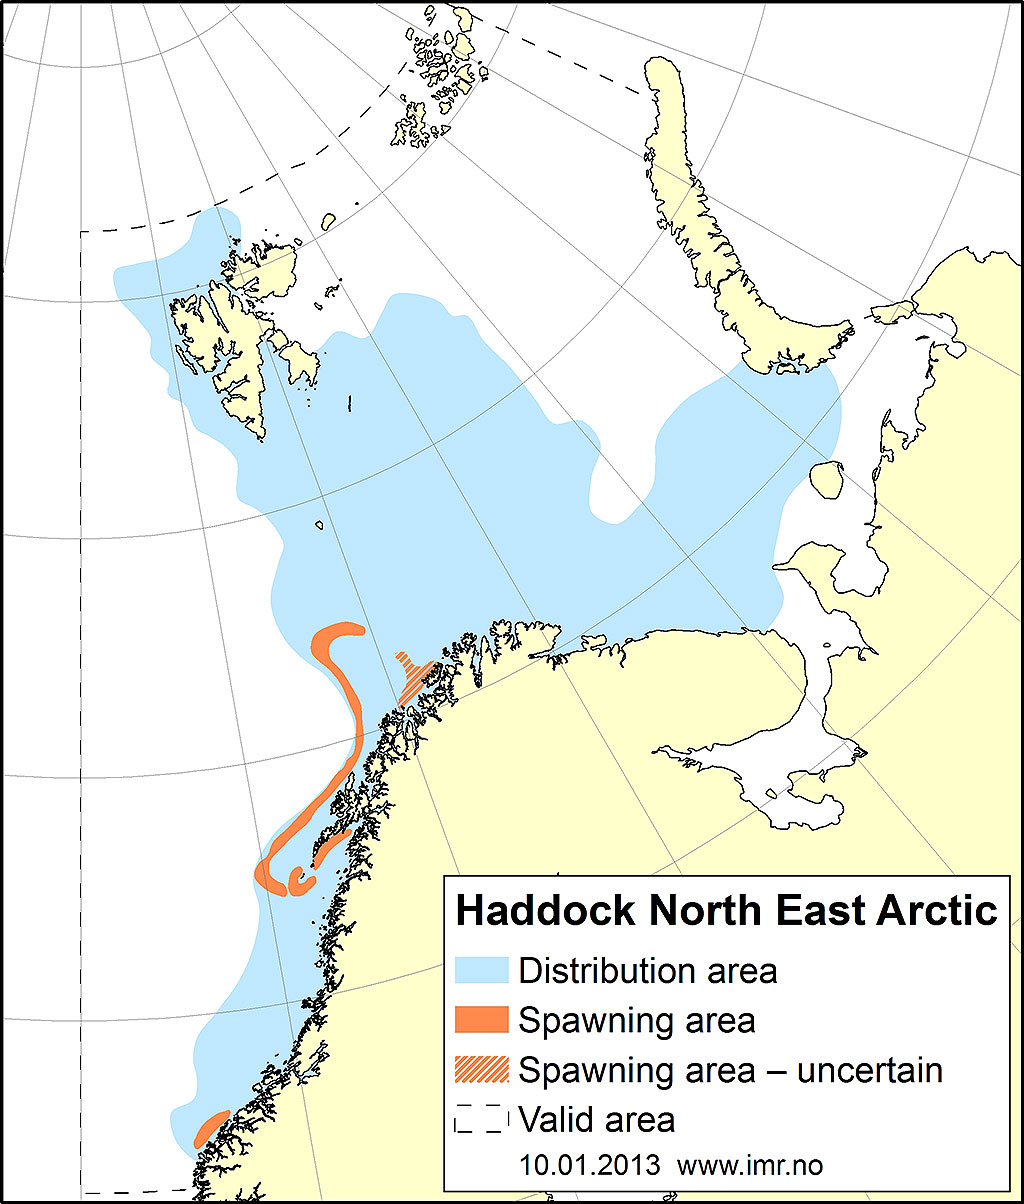 Figure 2.4.14. Distribution area for Northeast Arctic haddock.